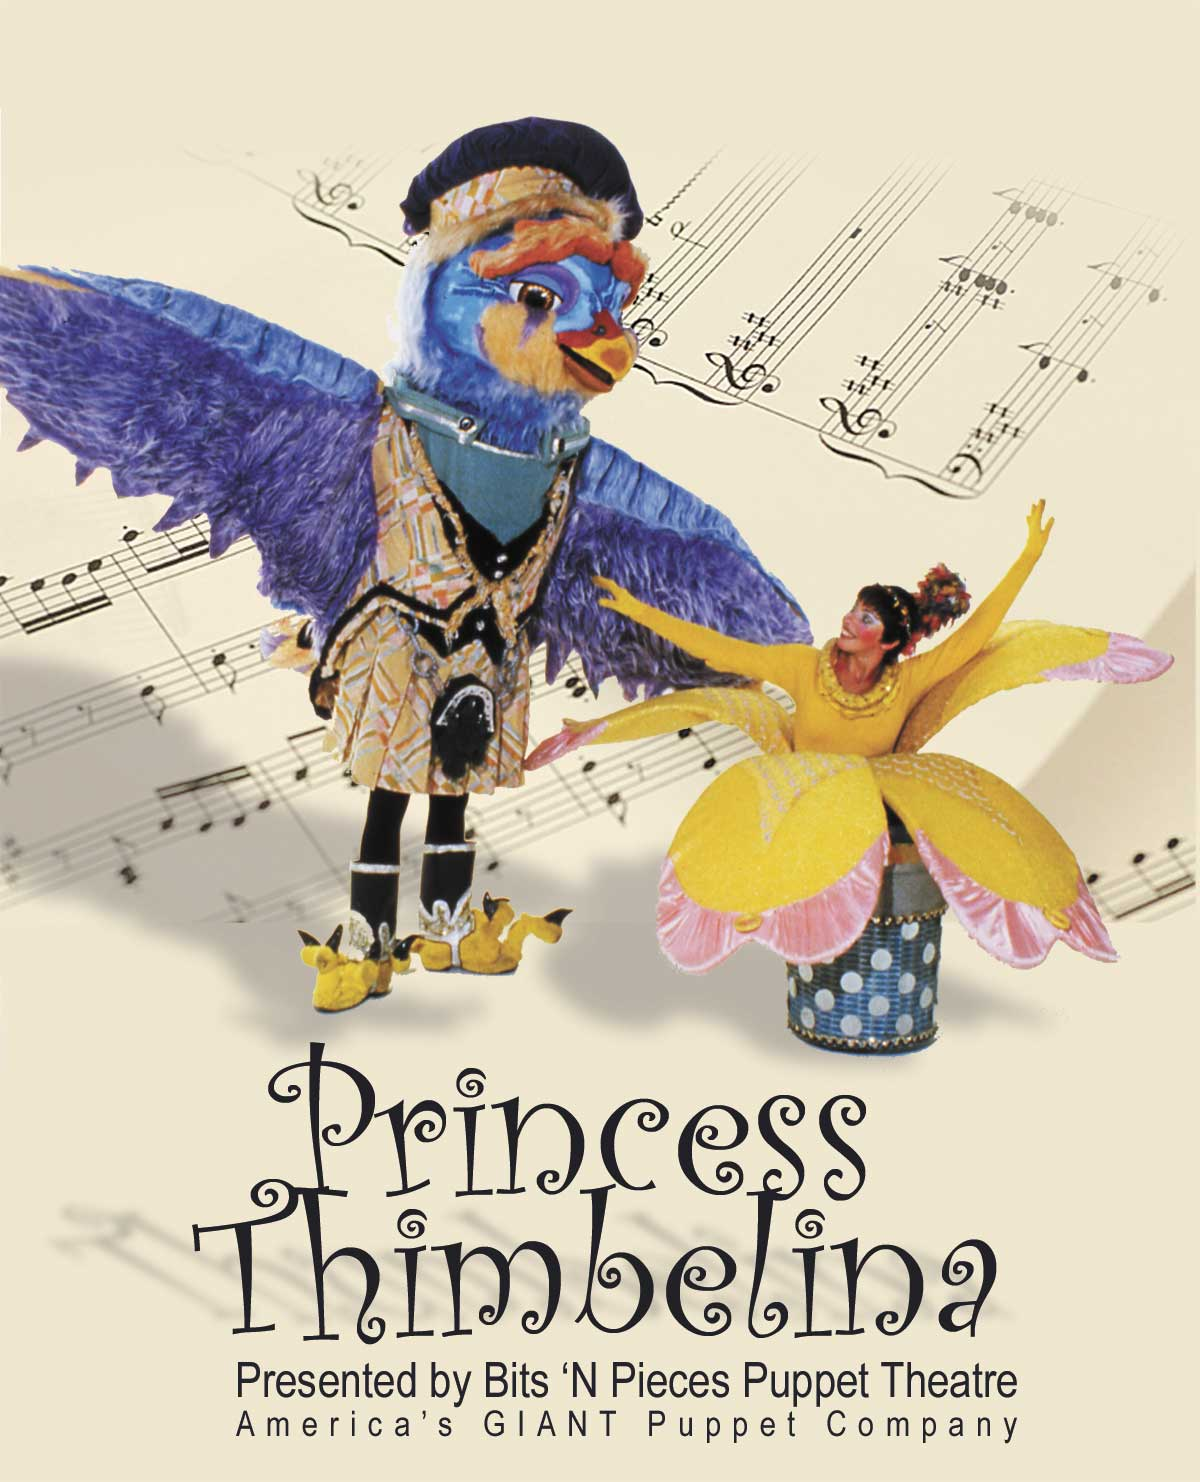 Princess Thimbelina starring Bits 'N Pieces GIANT Puppets!